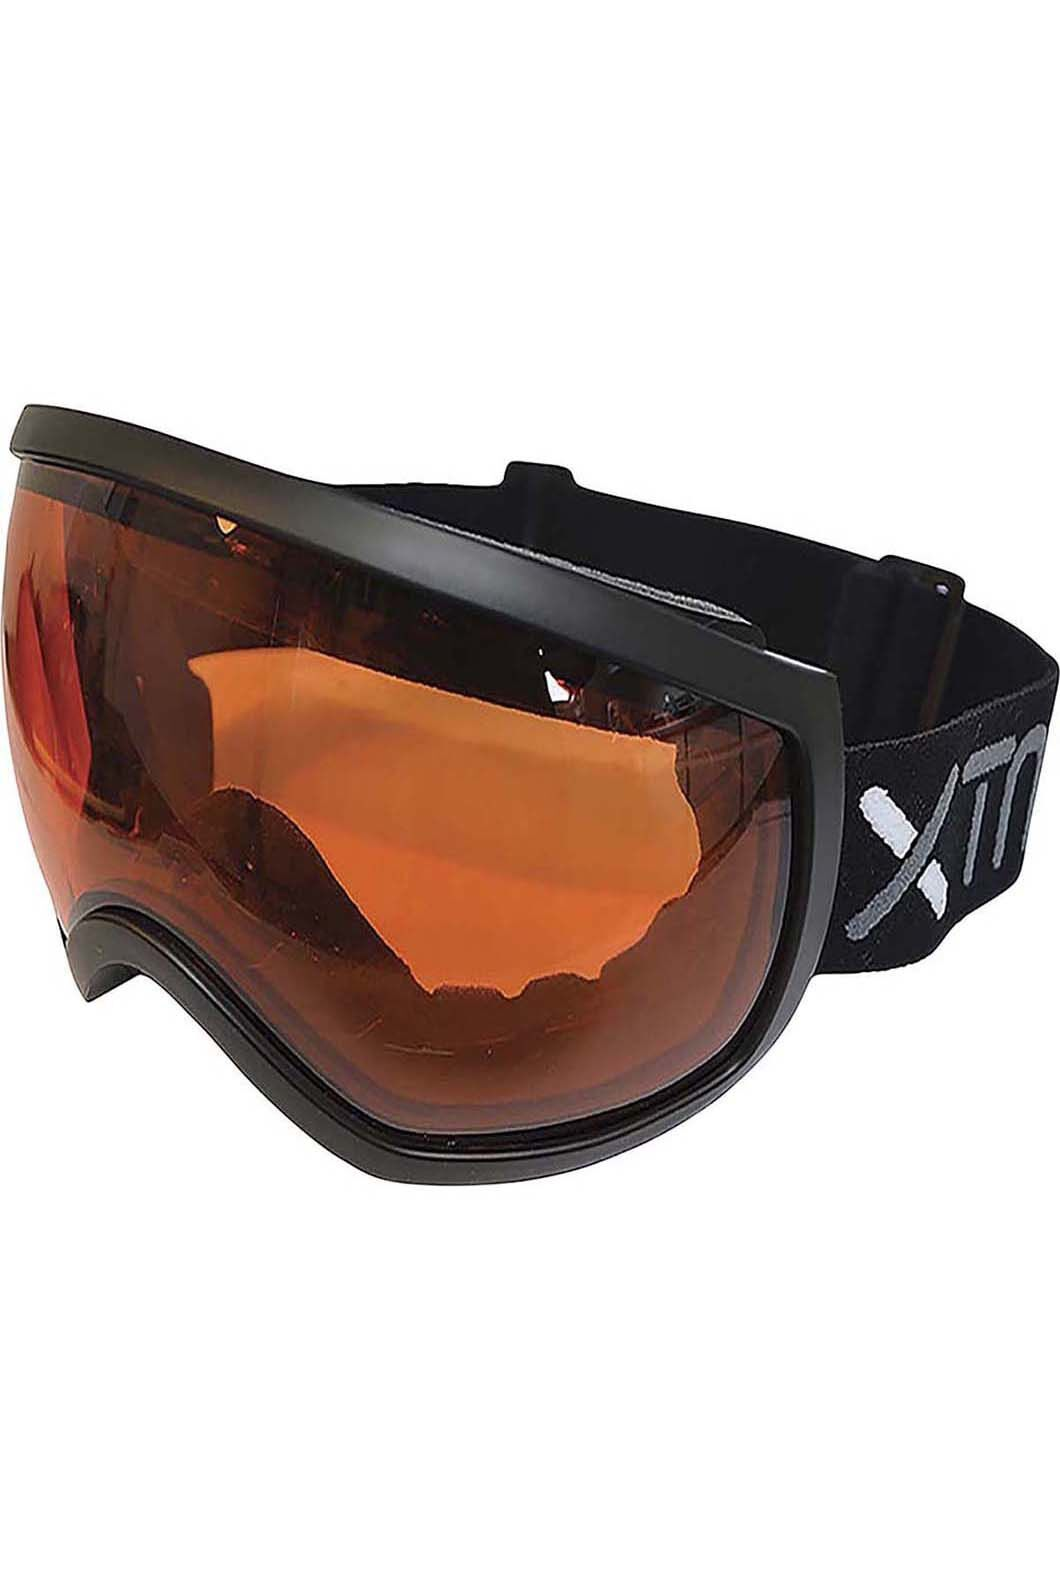 Force Unisex Double Lens Snow Goggles  One Size Fits Most, Black, hi-res